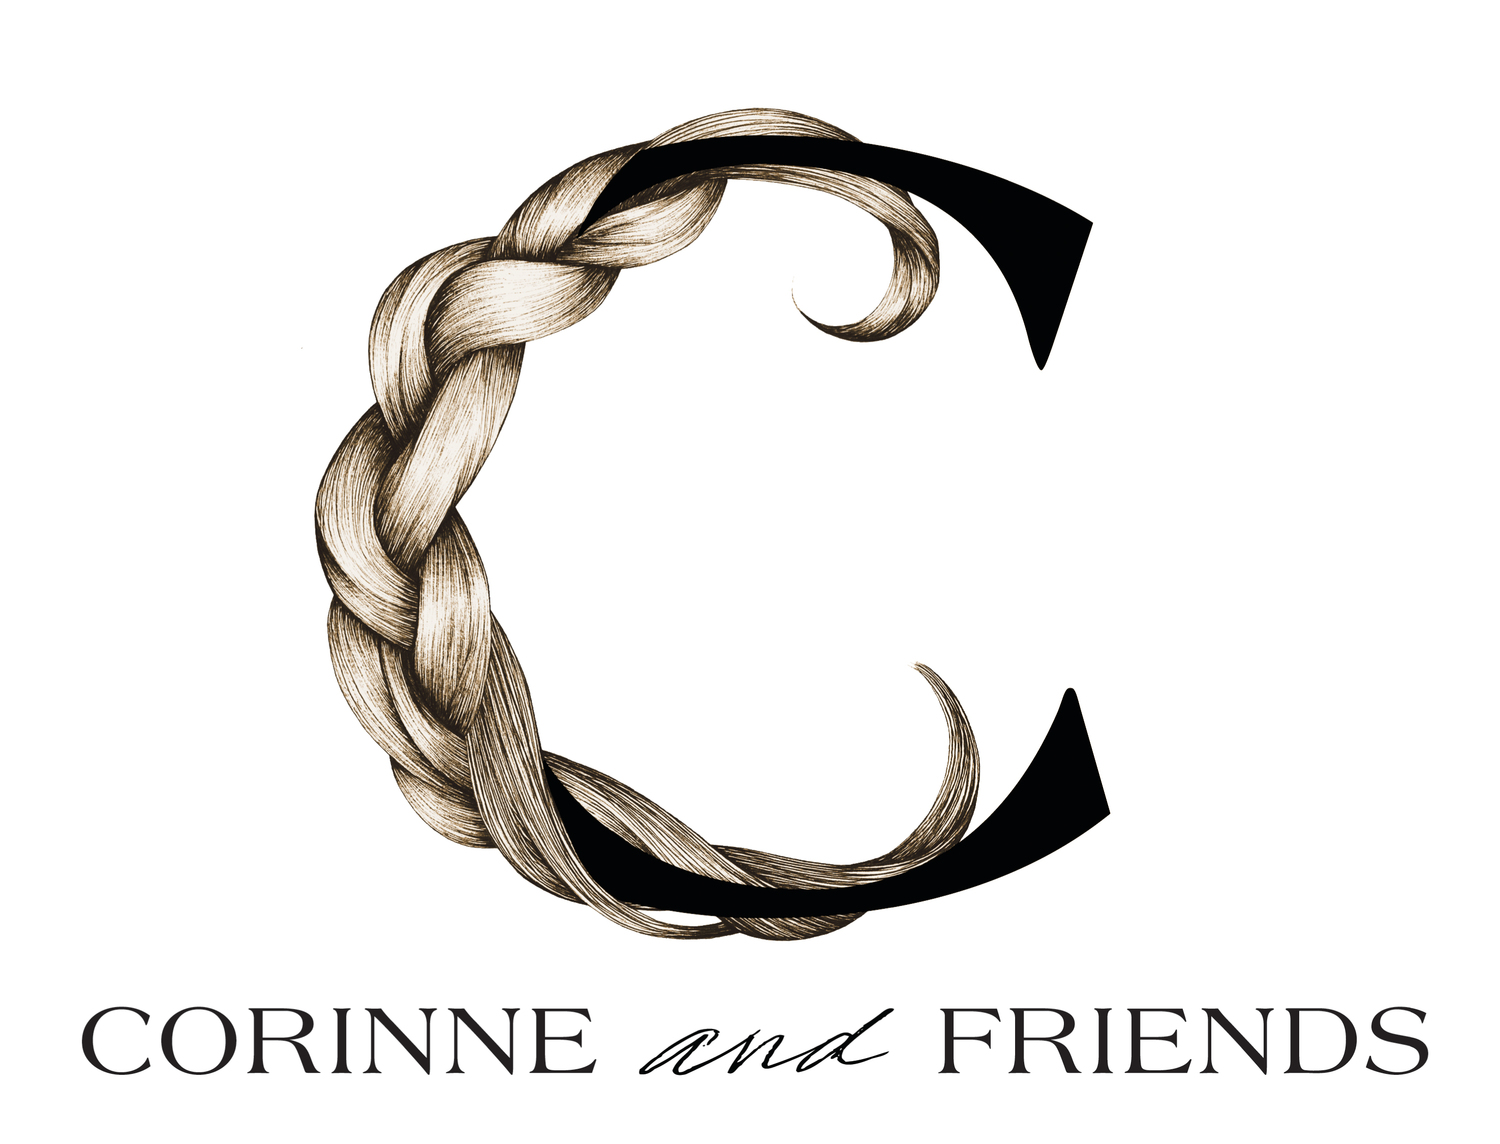 Corinne & Friends